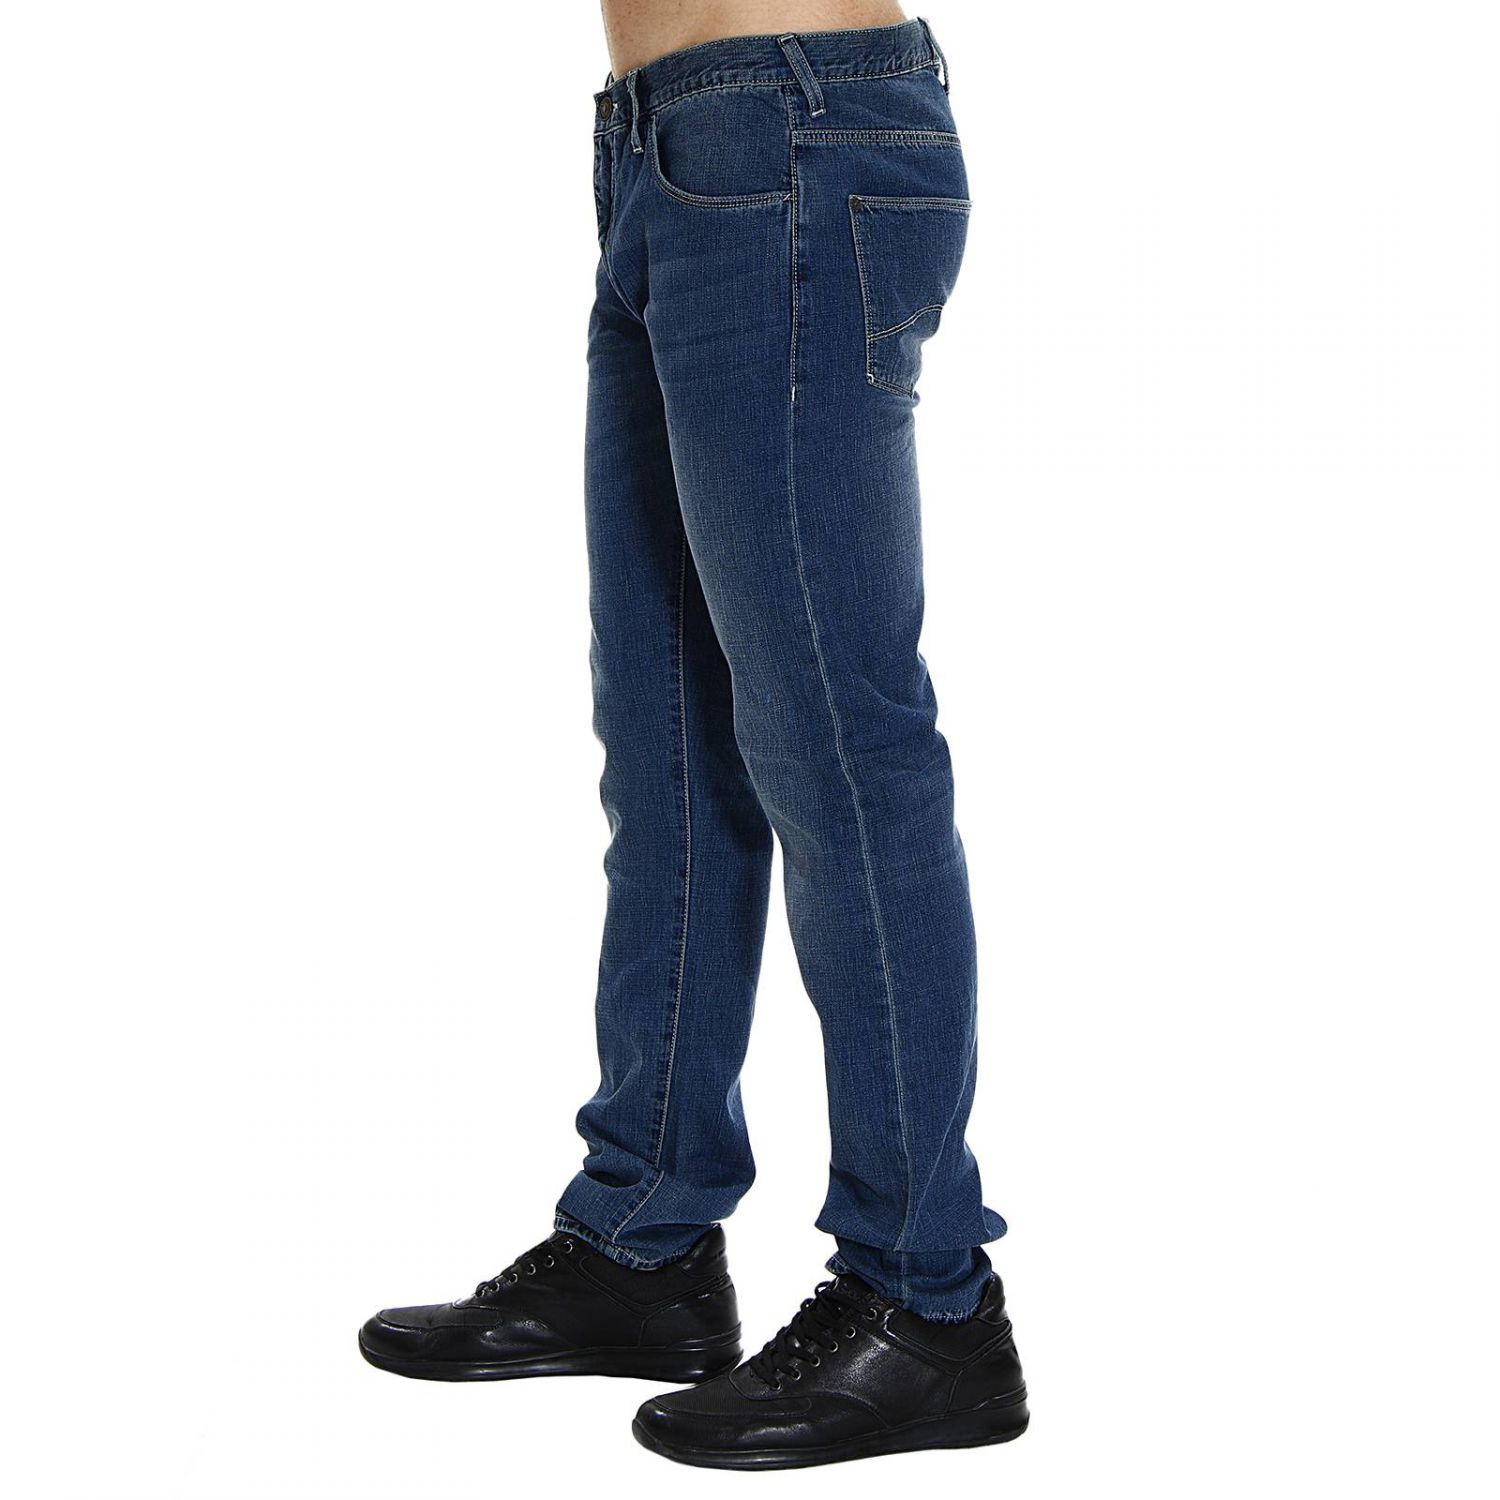 Giorgio armani Jeans Man in Blue for Men